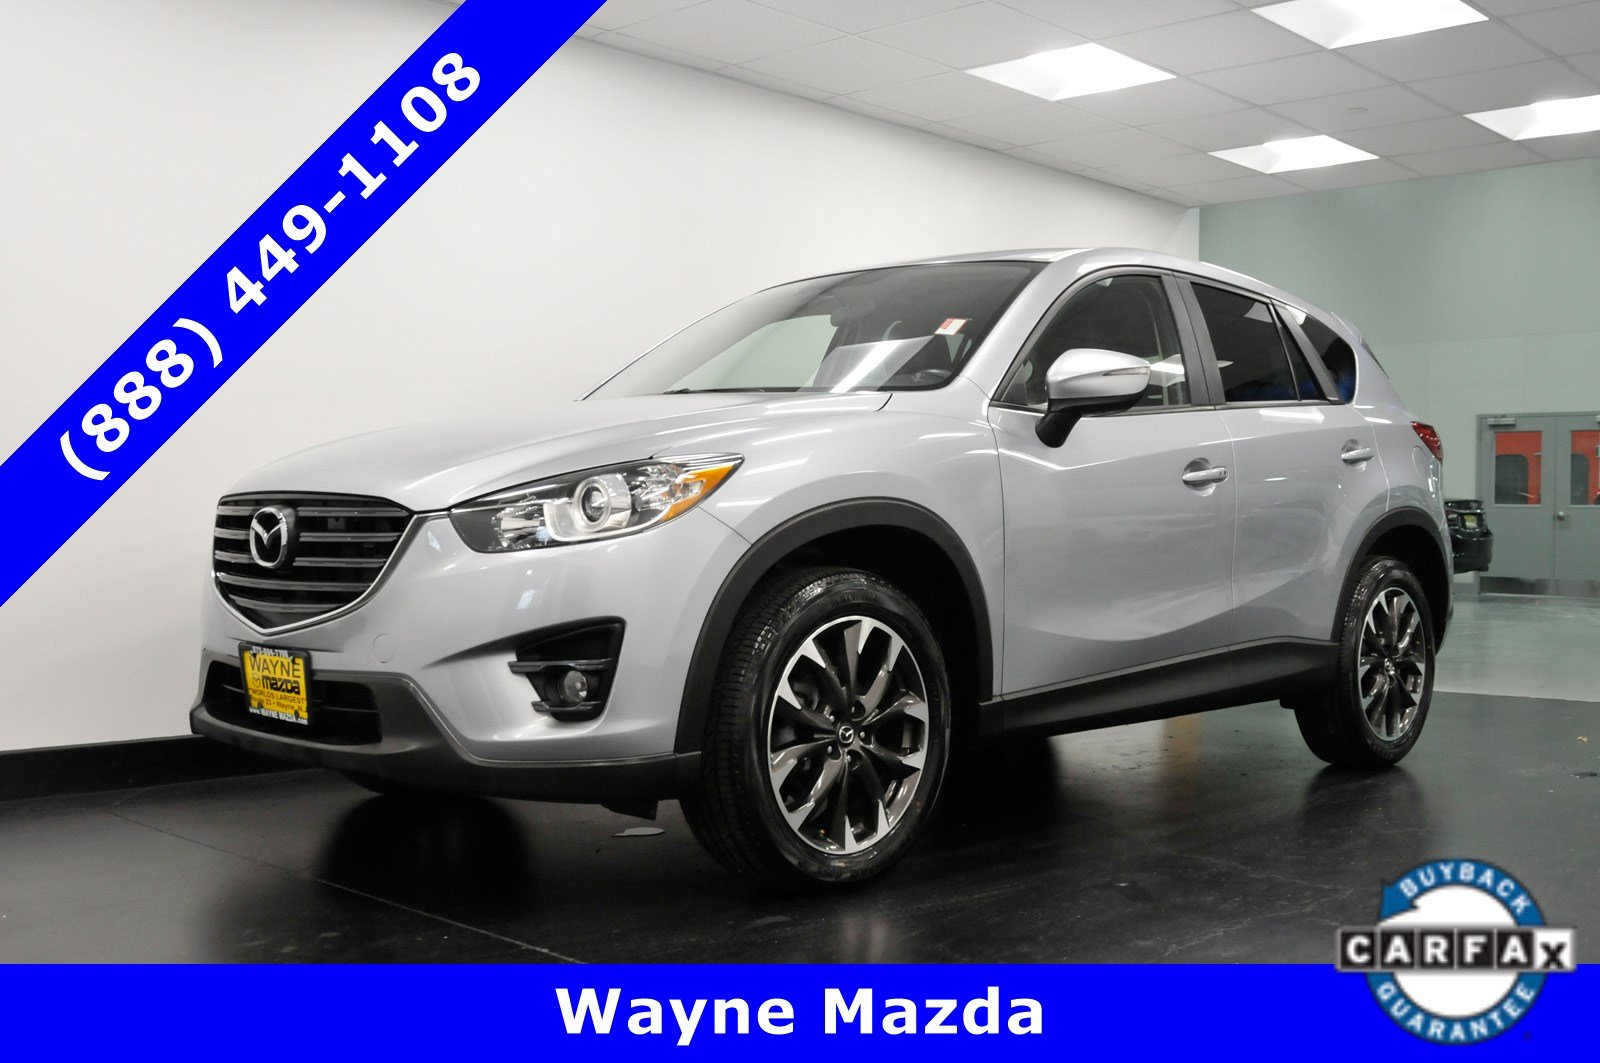 2016 Mazda Mazda CX-5 Grand Touring AWD SUV